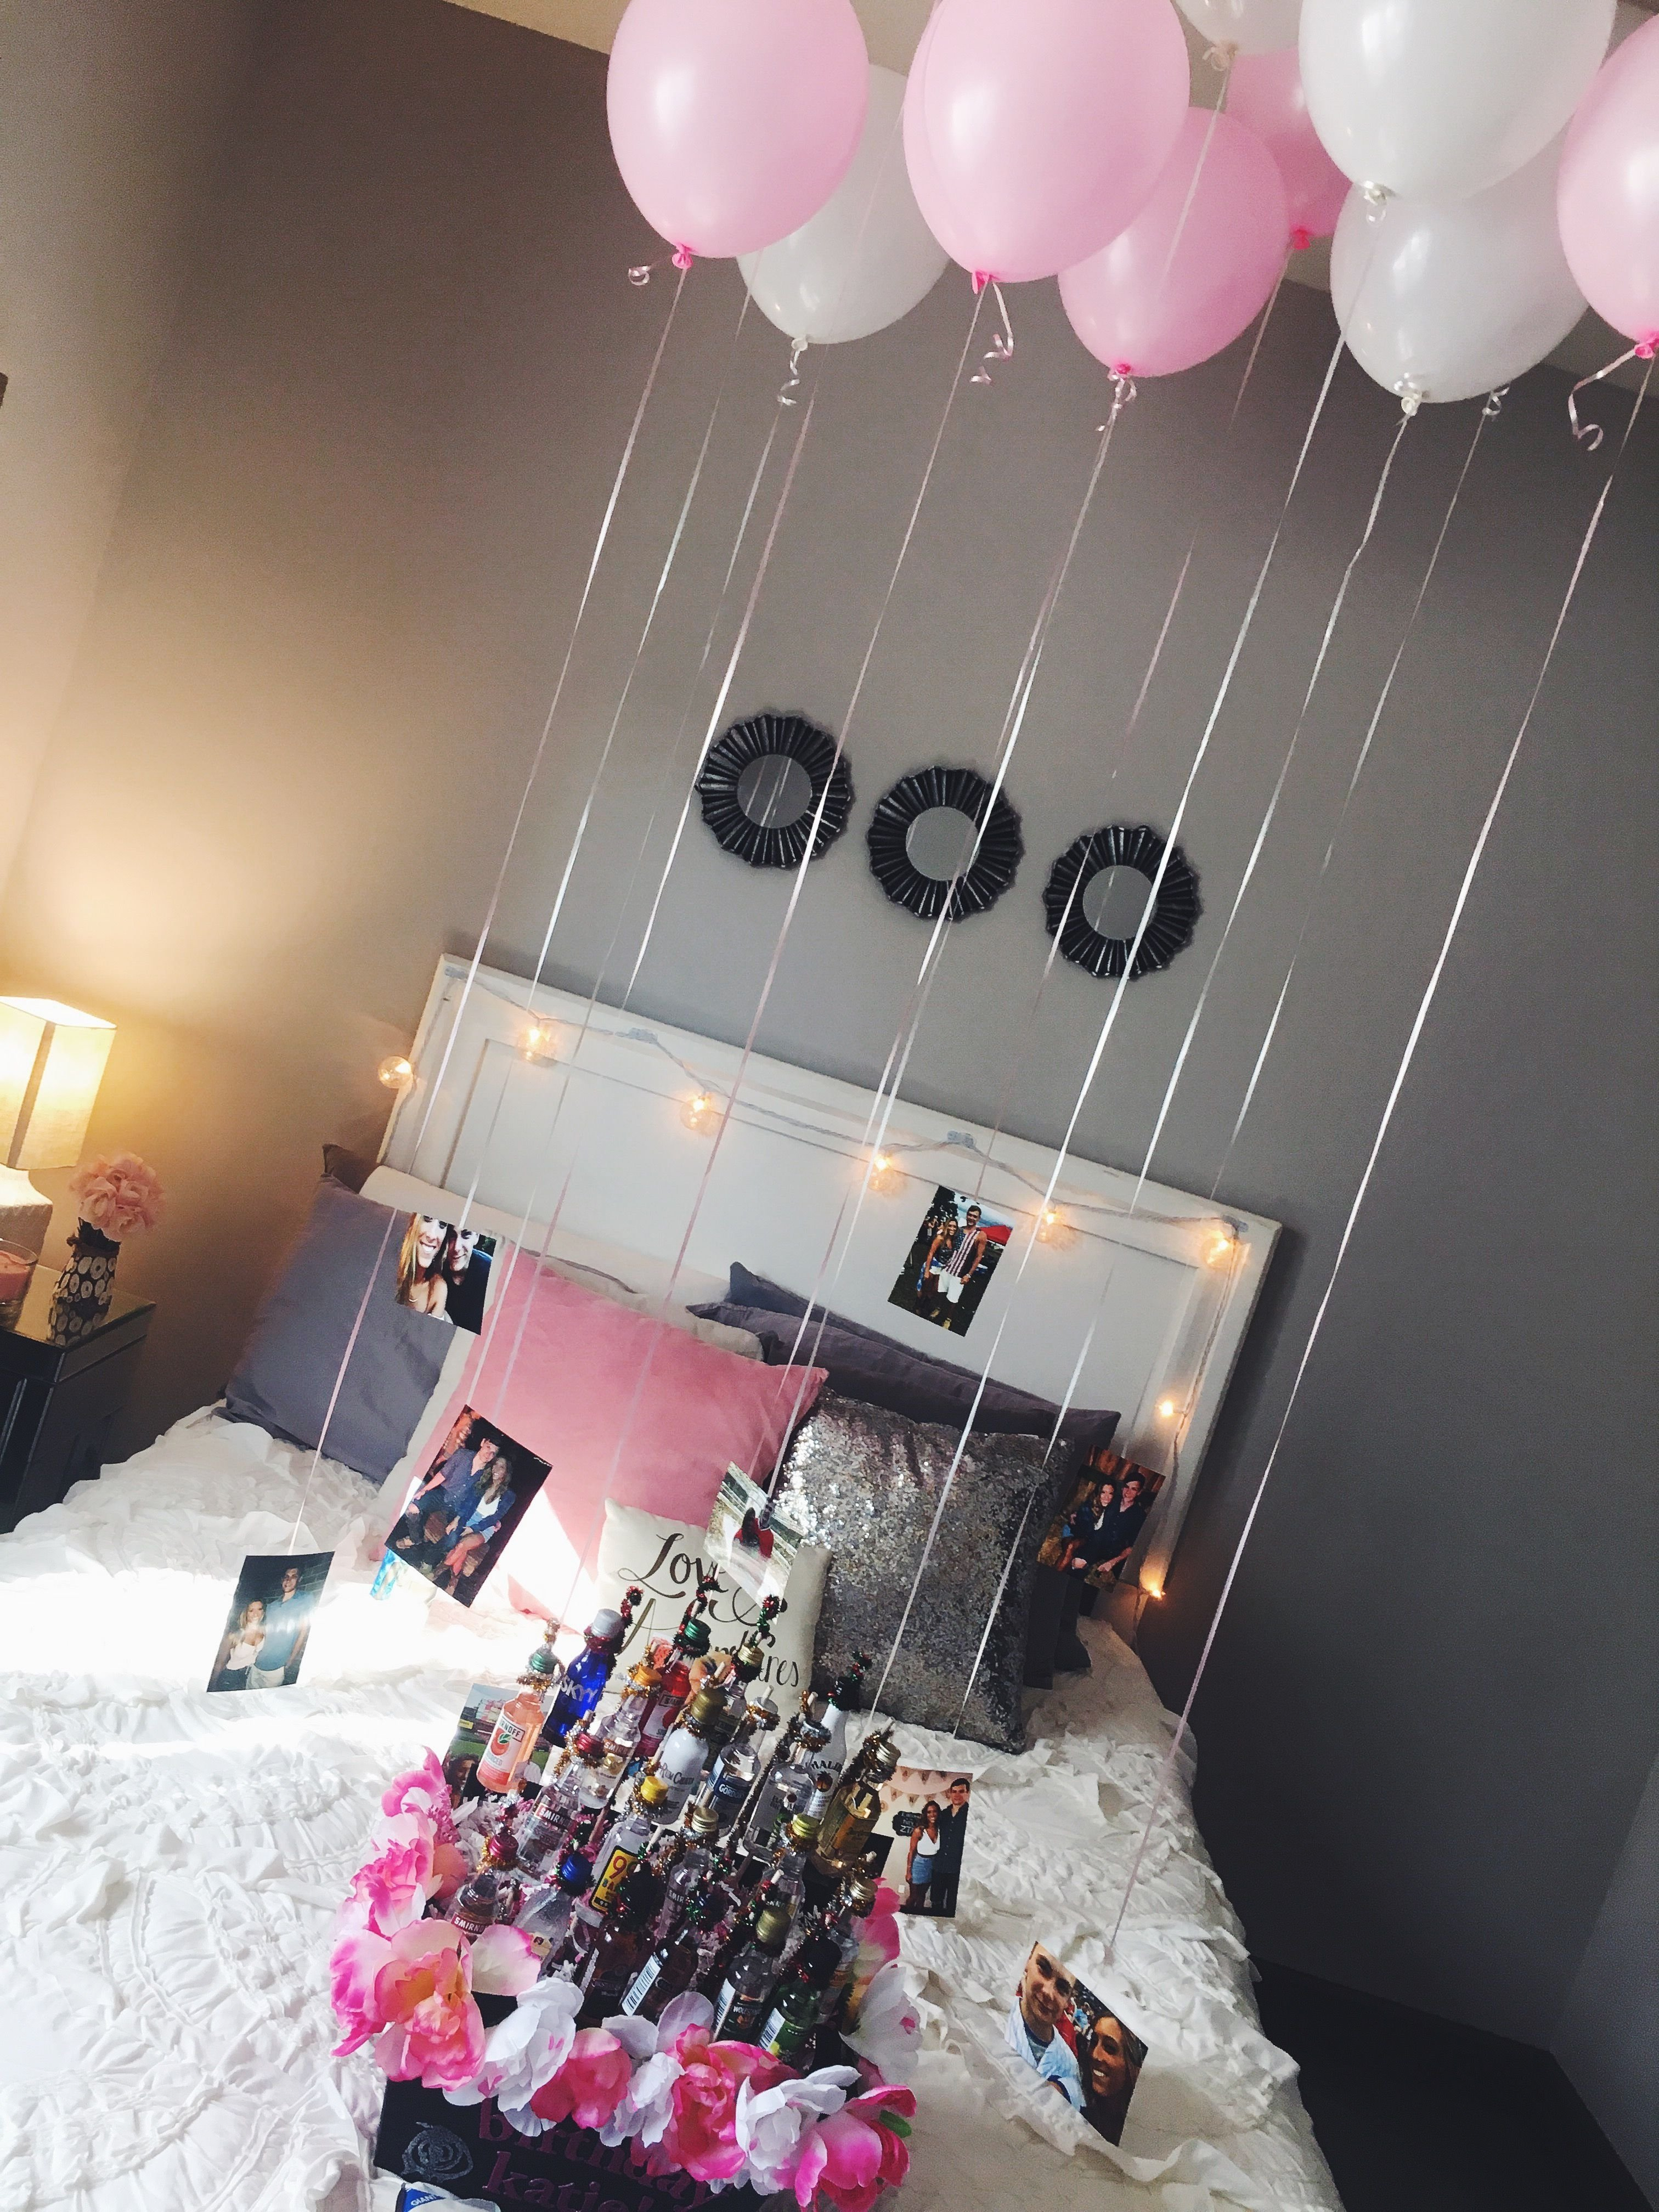 10 Fashionable Birthday Surprise Ideas For Girlfriend easy and cute decorations for a friend or girlfriends 21st birthday 8 2021